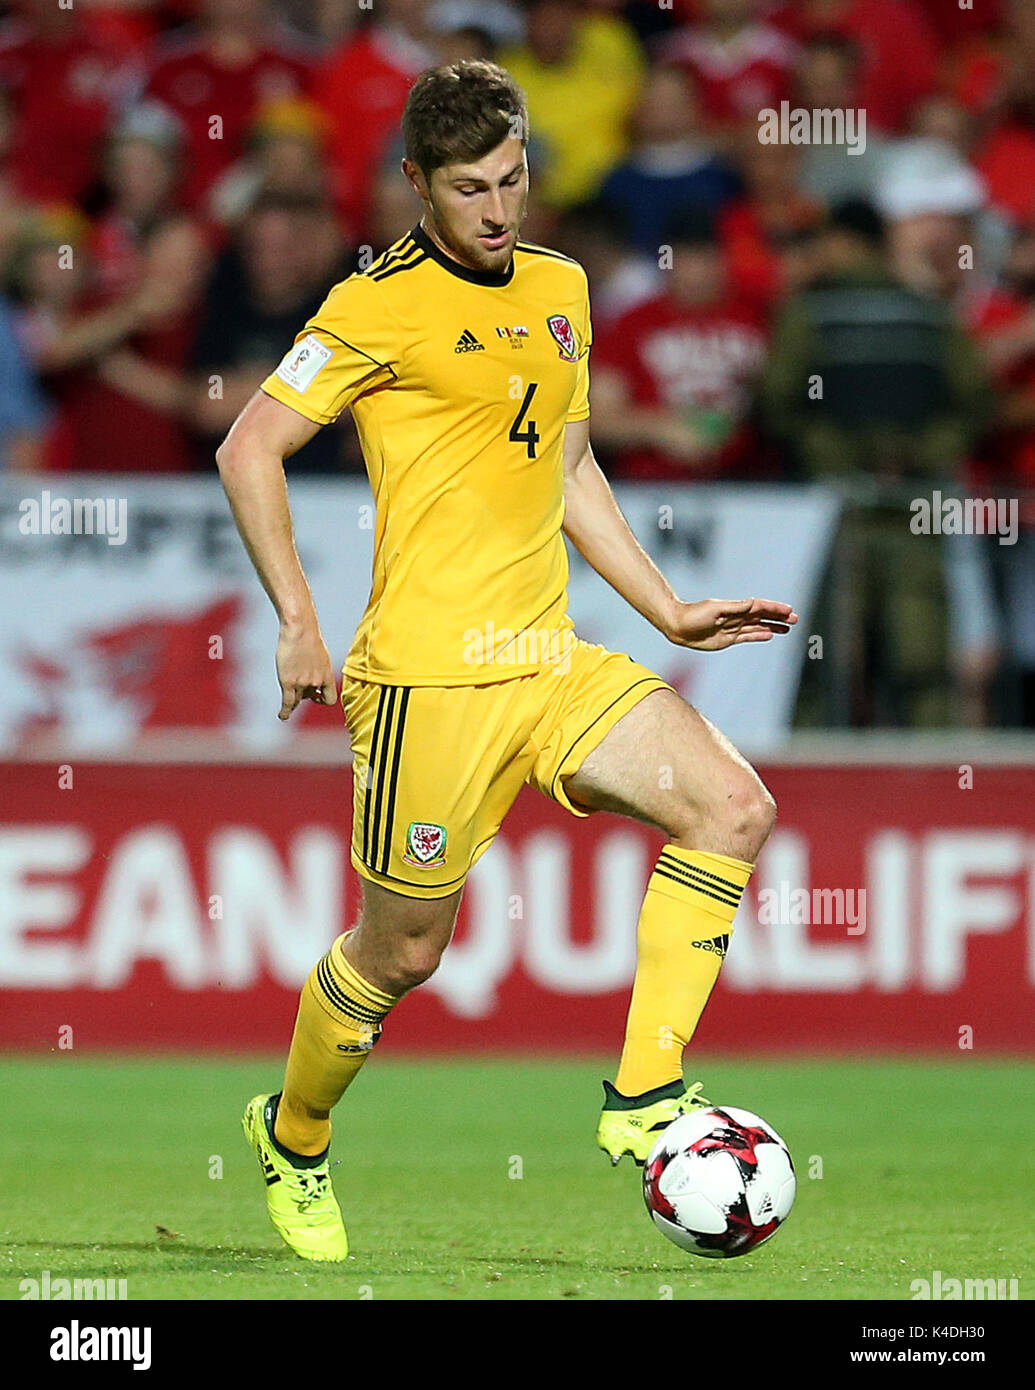 Wales Ben Davies During The 2018 Fifa World Cup Qualifying Group D Match At Stadionul Zimbru In Chisinau Moldova Press Association Photo